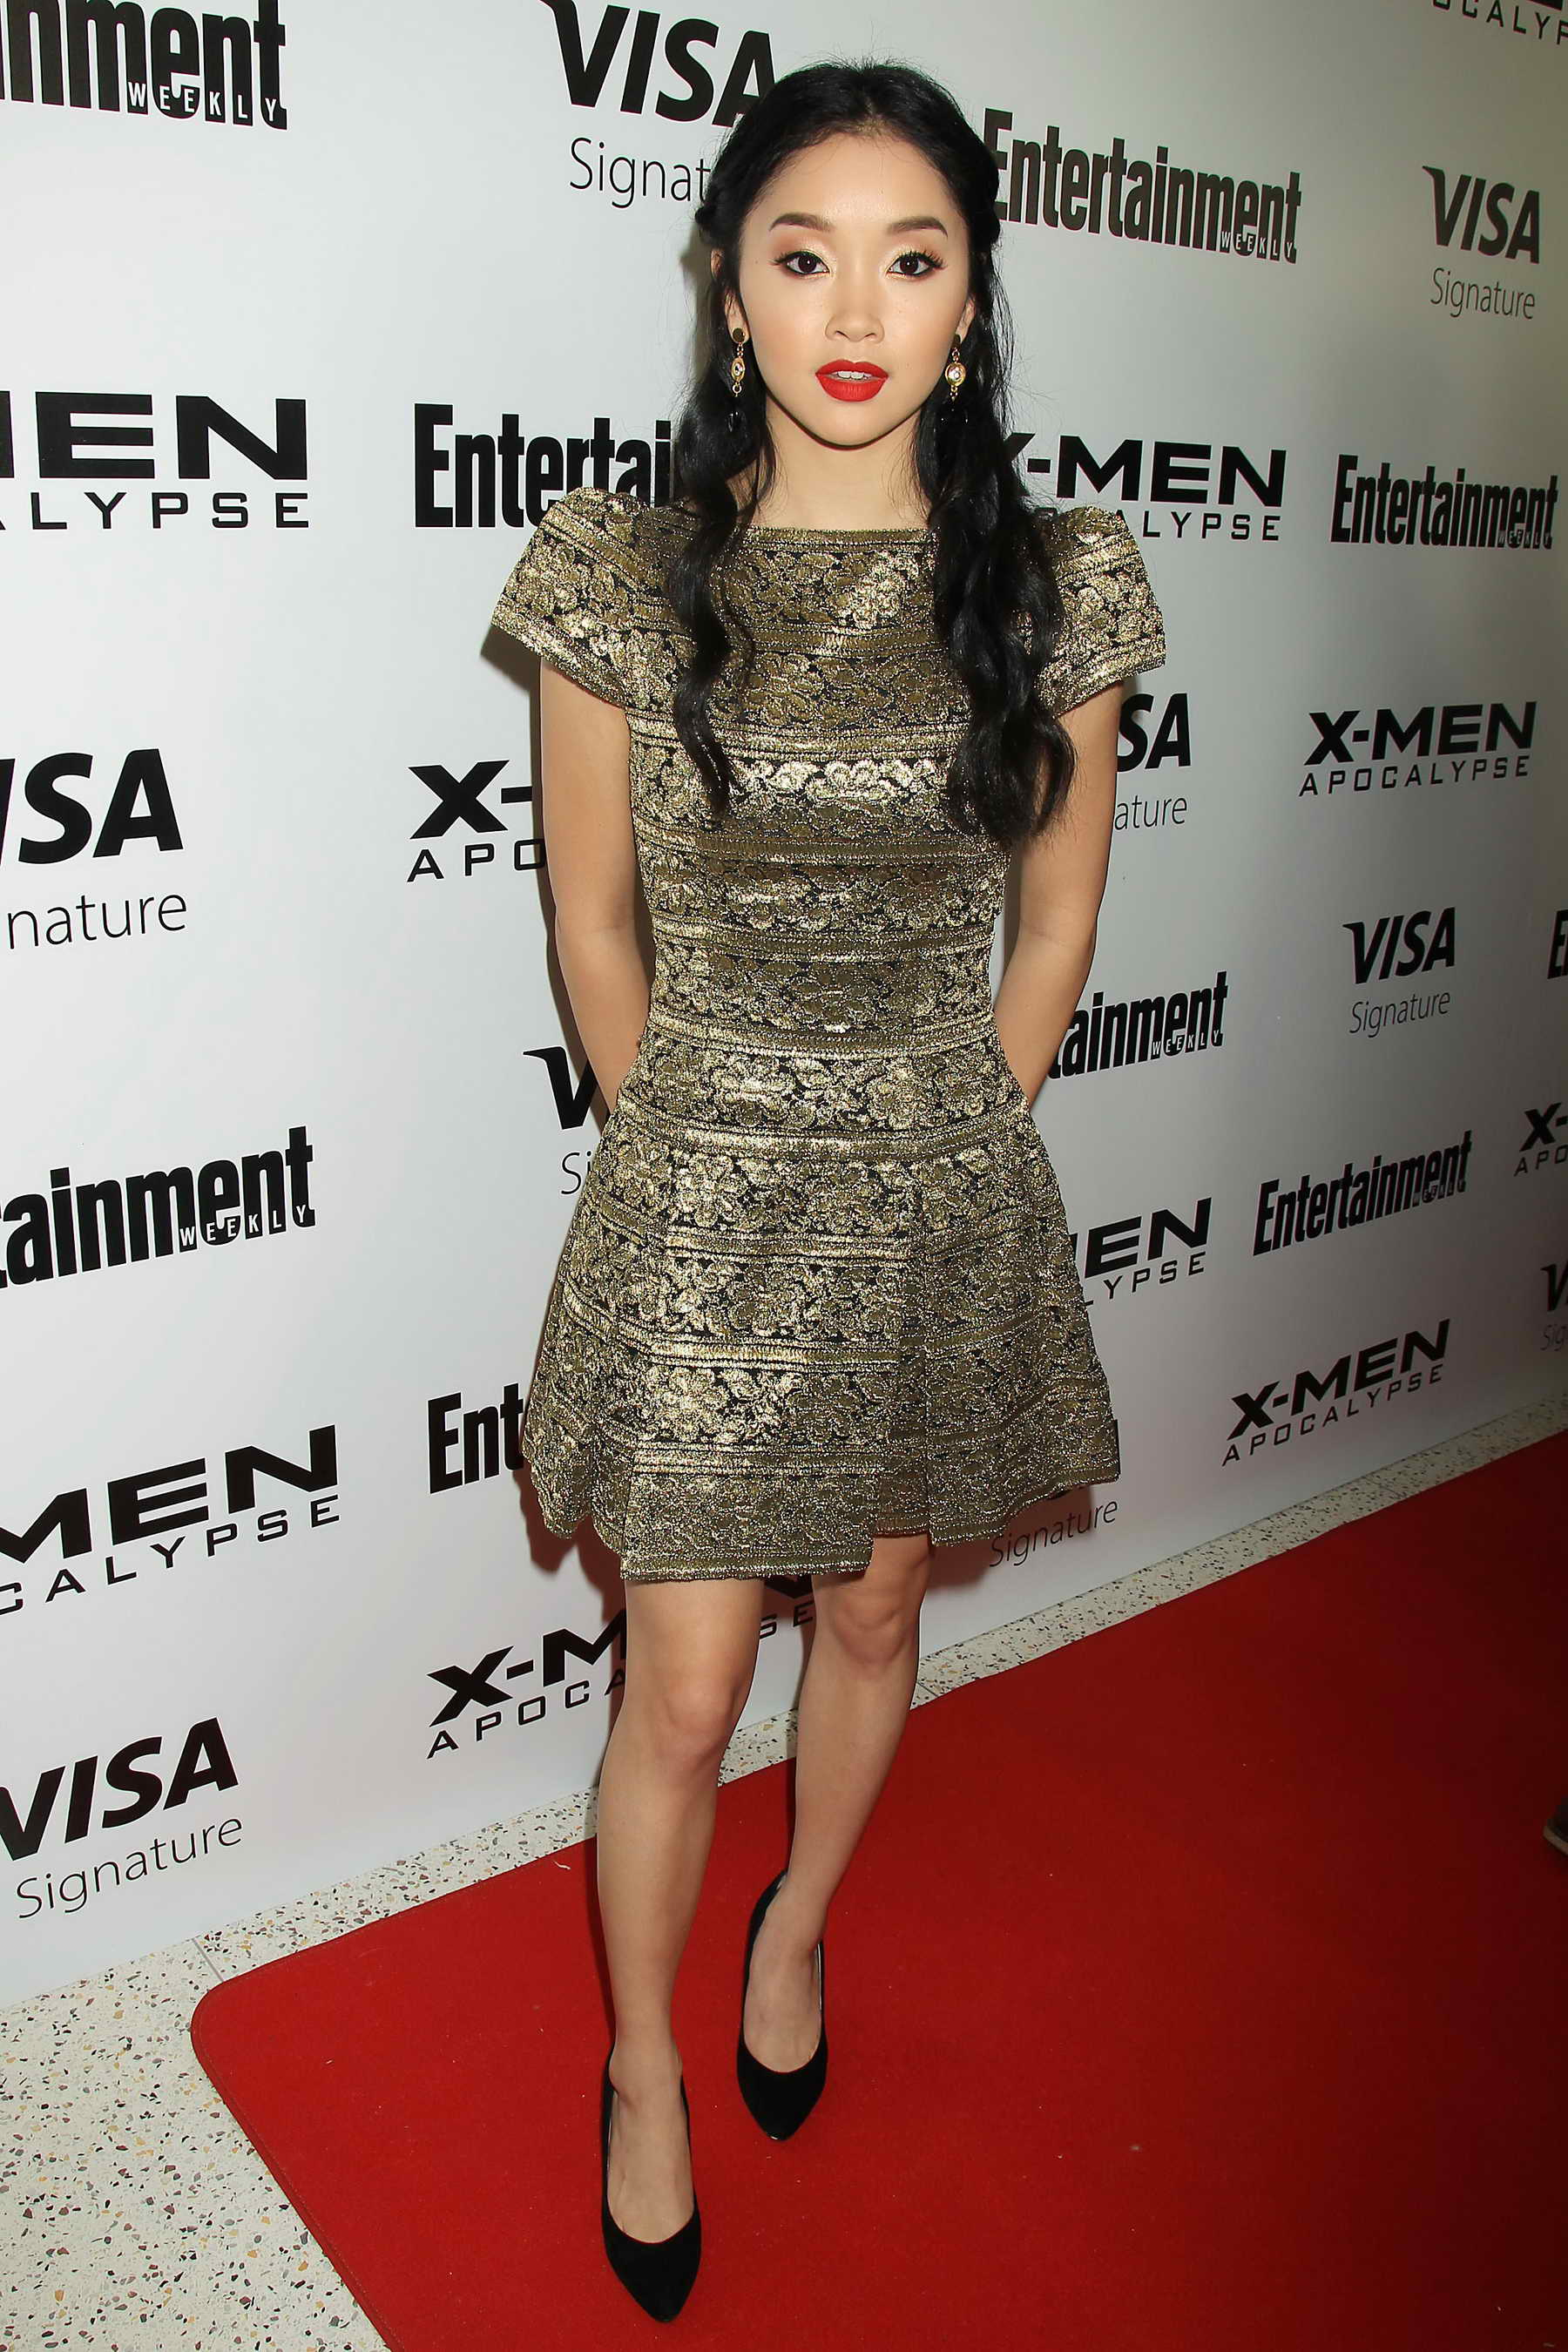 Weekly Address >> Lana Condor at Entertainment Weekly X-Men: Apocalypse Screening in New York City – Celeb Donut